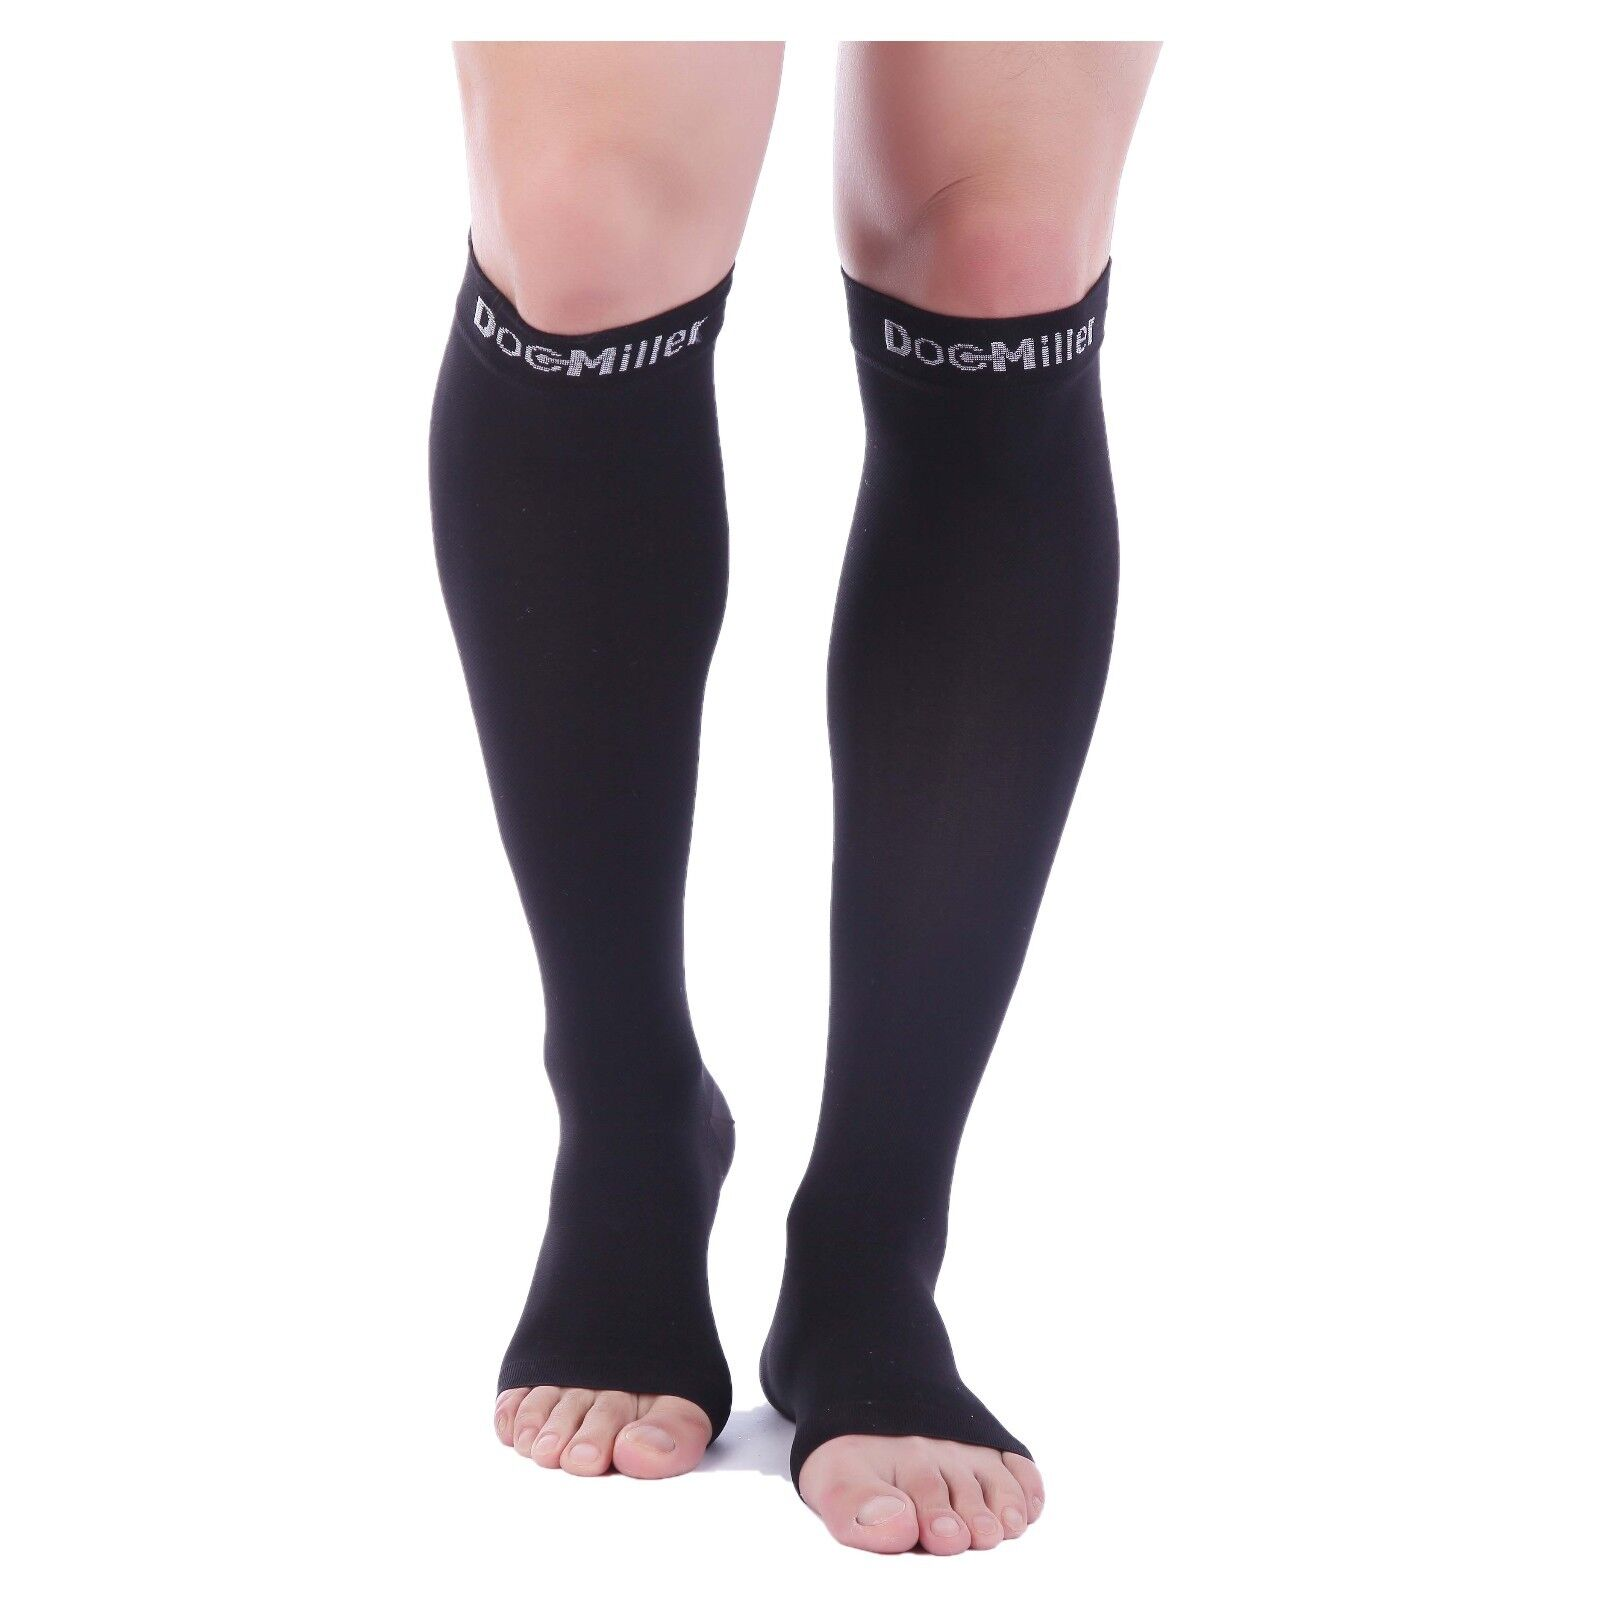 cb9ecf1a2cd Details about Doc Miller Open Toe Compression Sleeve 30-40 mmHg Varicose  Veins BLACK